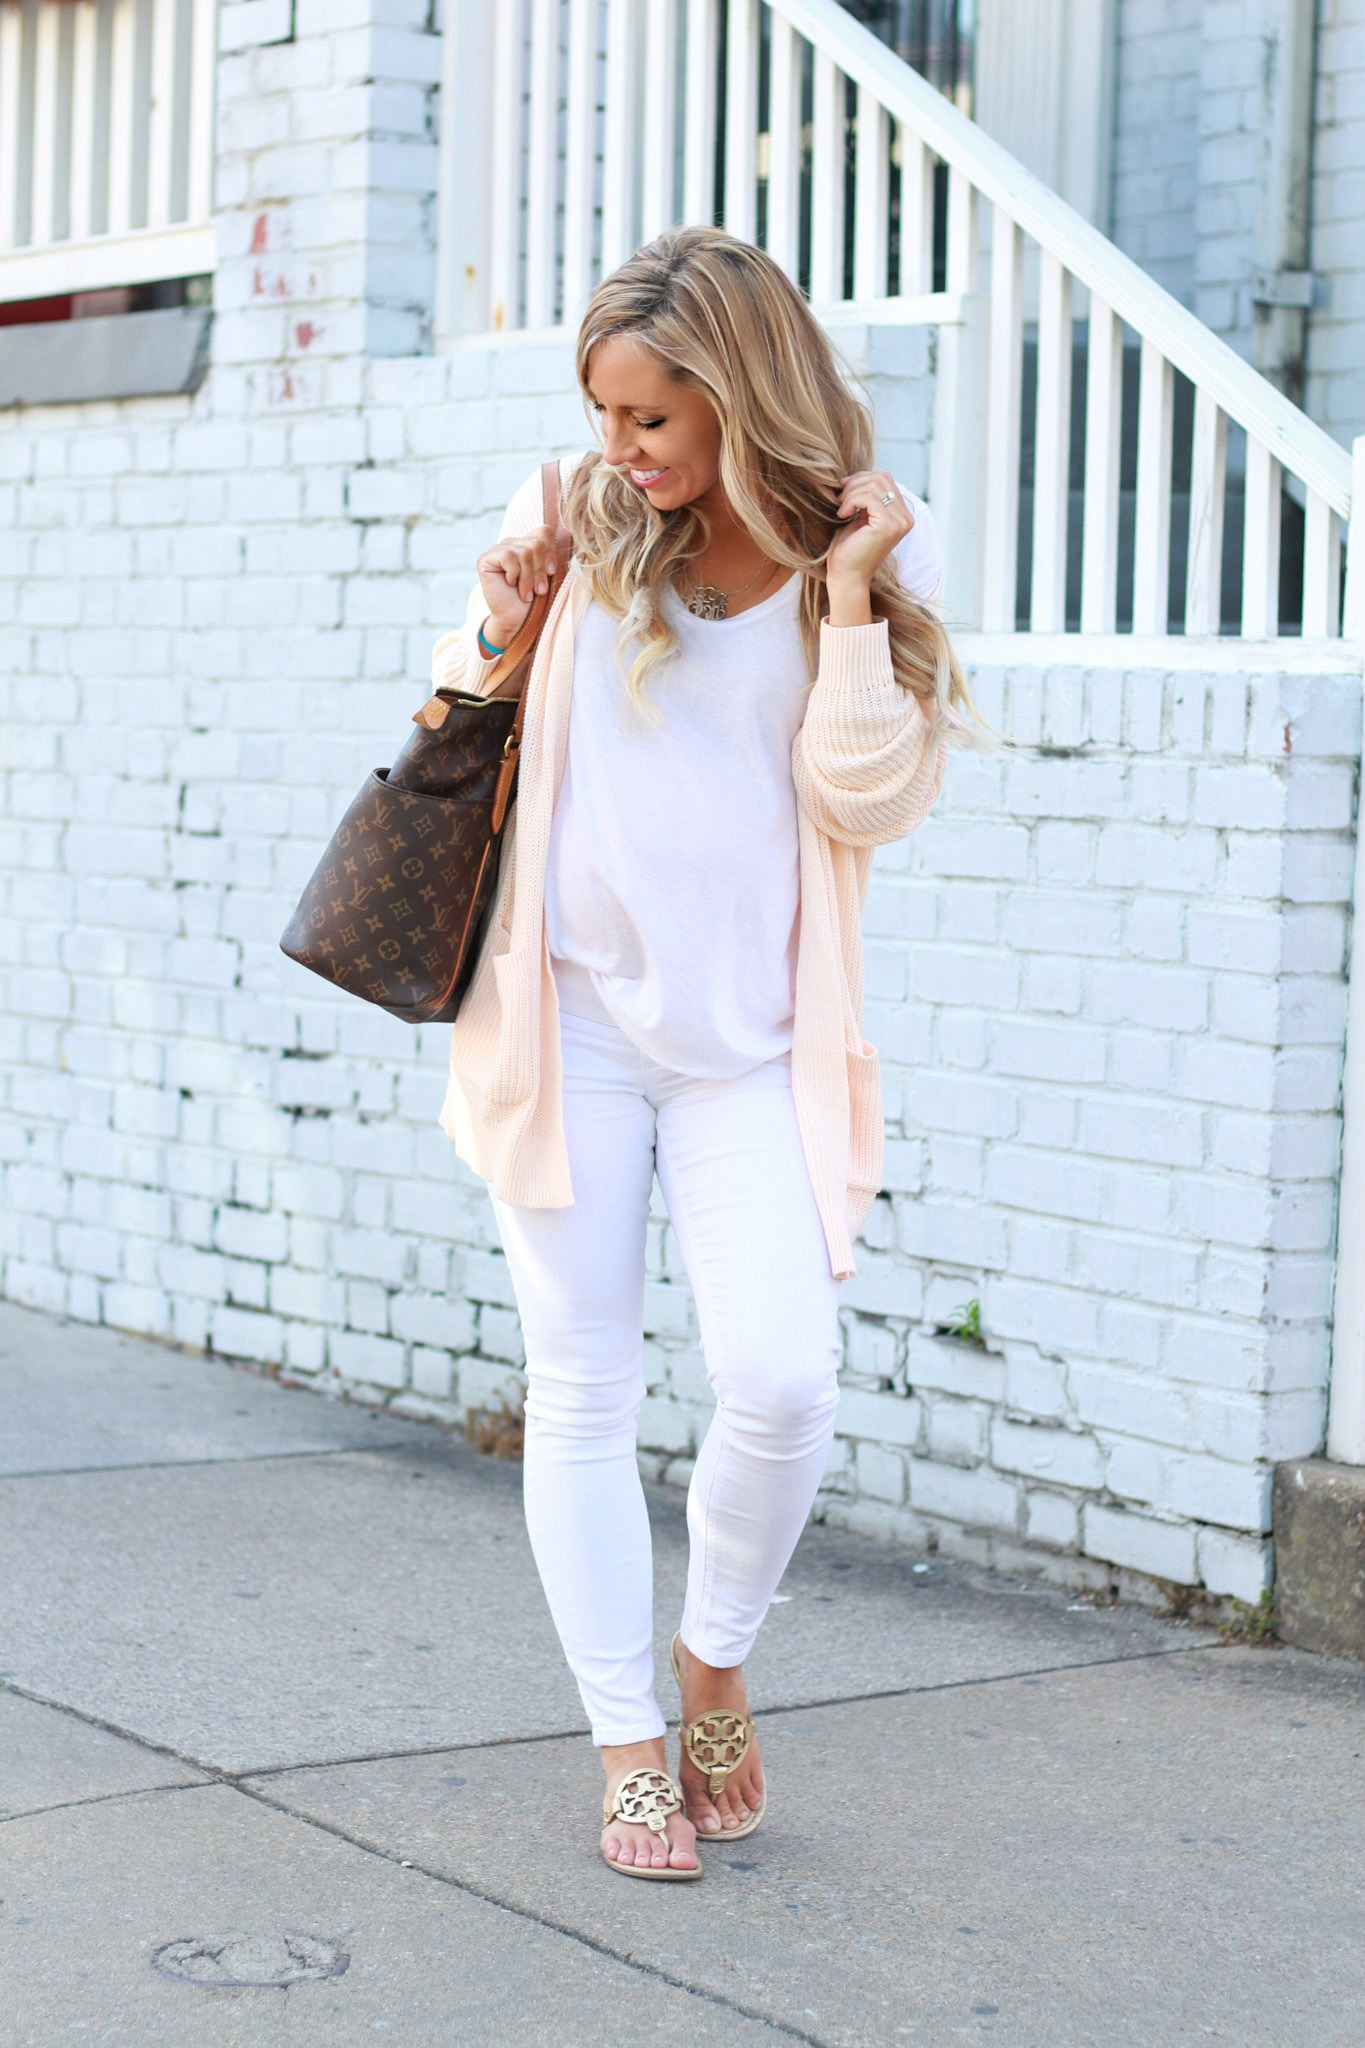 maternity style, all white outfit